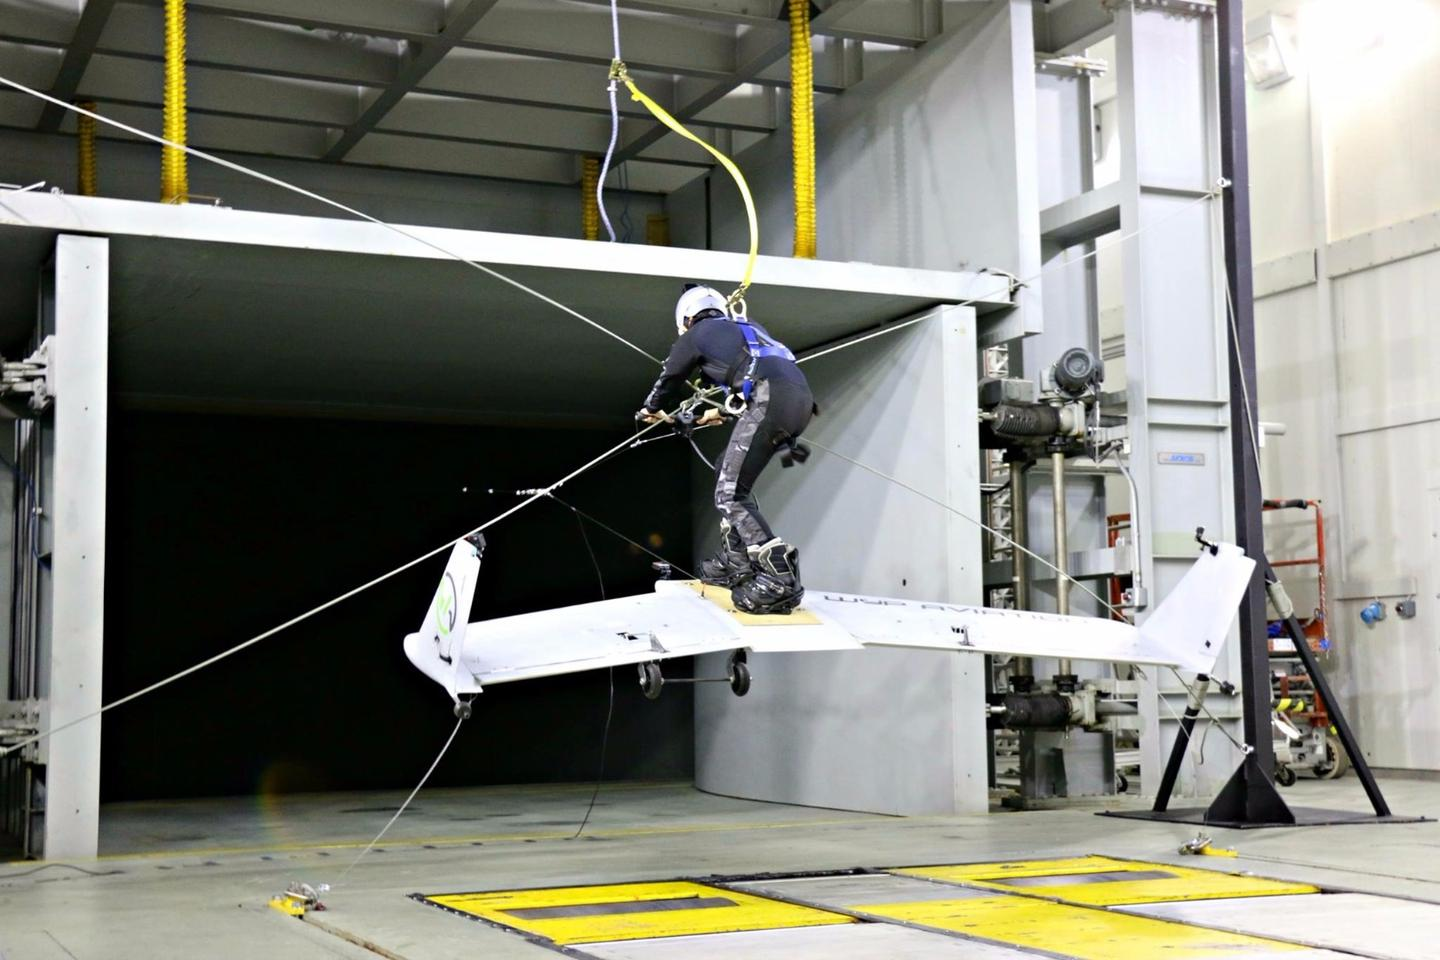 The testing took place across two days at the Ontario Institute of Technology's ACE (Automotive Centre of Excellence) wind tunnel